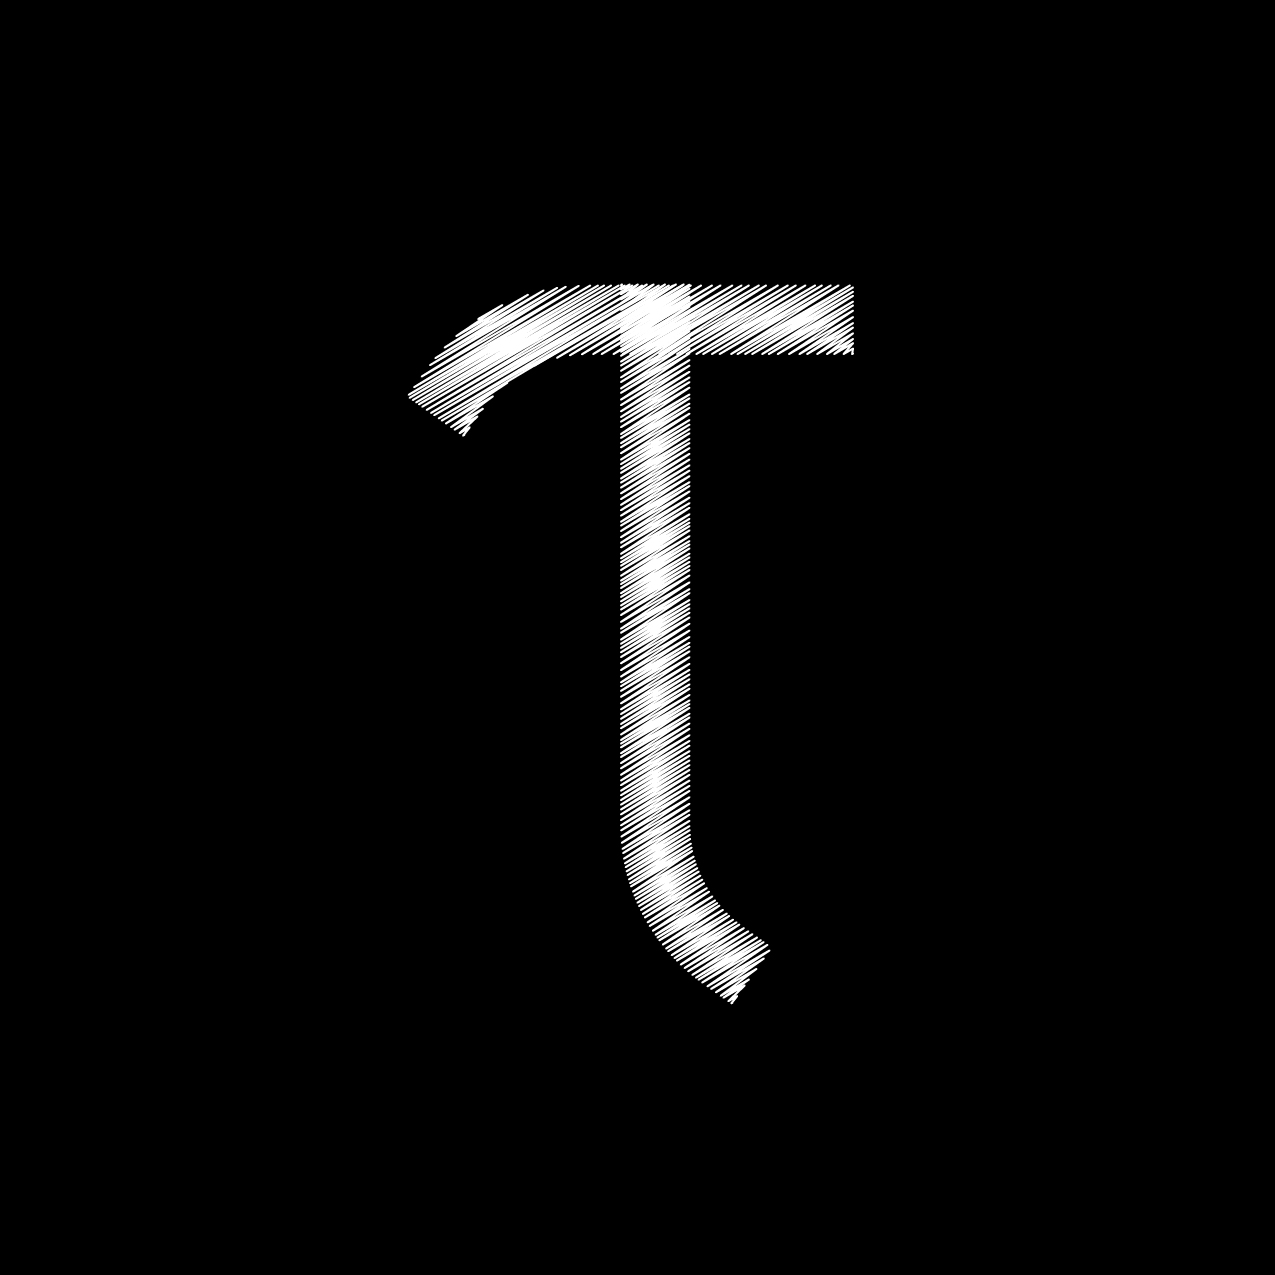 Letter T14 Design by Furia